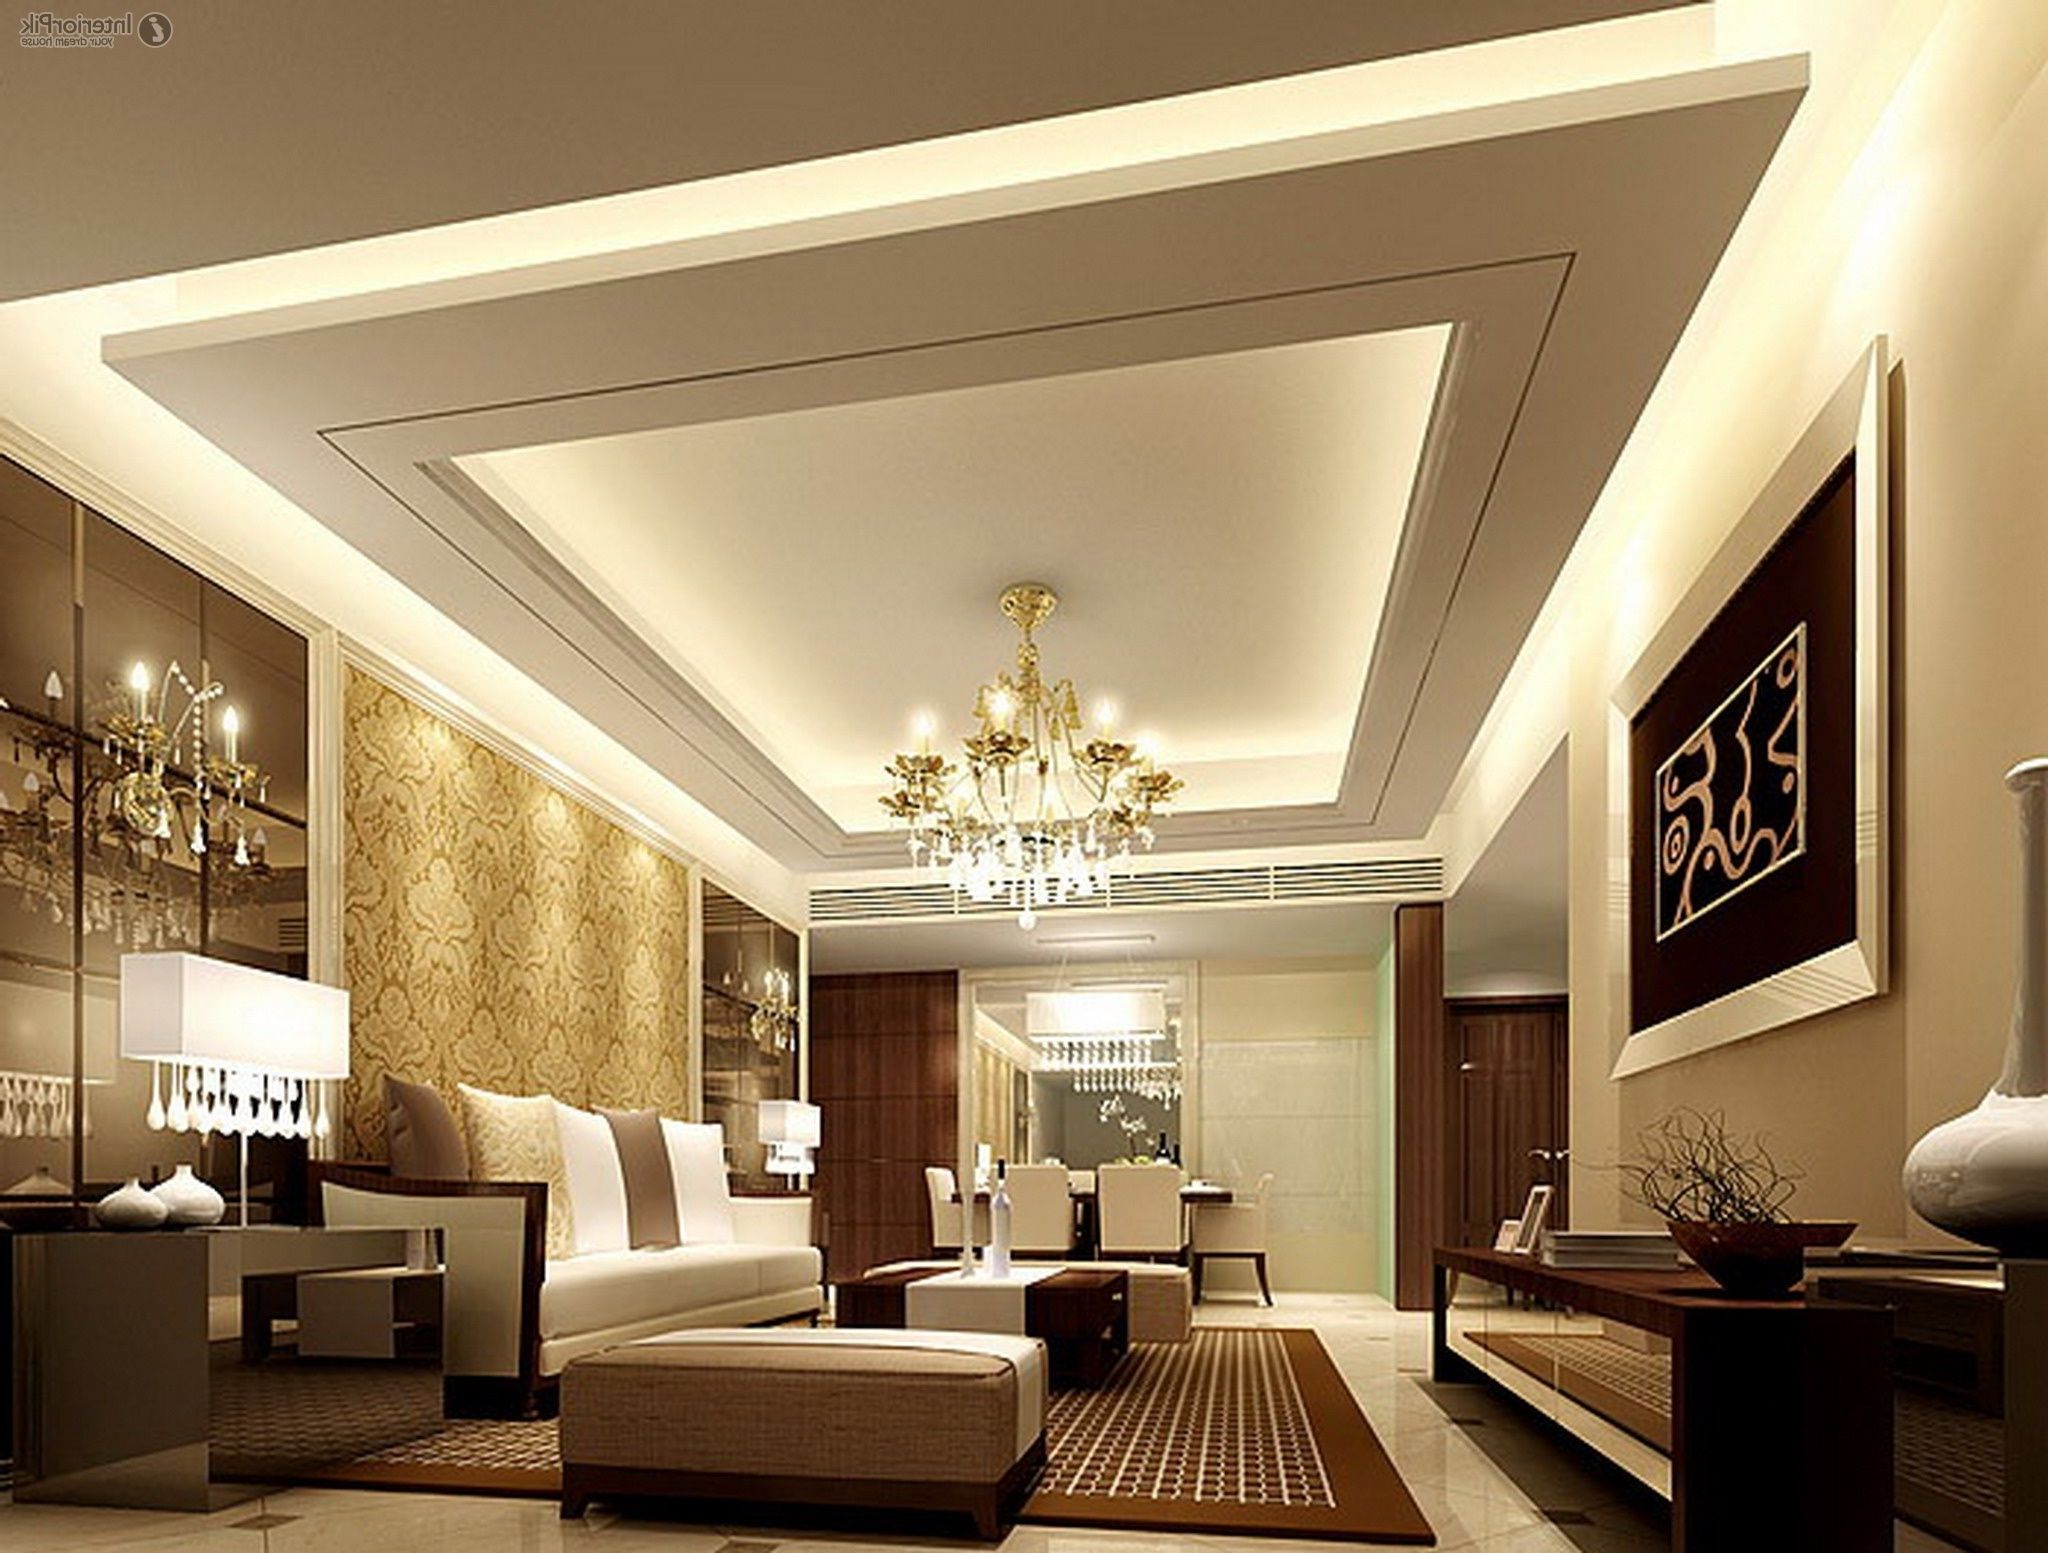 Best Design For Living Room Interesting Gypsum Ceiling Design For Living Room Lighting Home Decorate Best Design Ideas